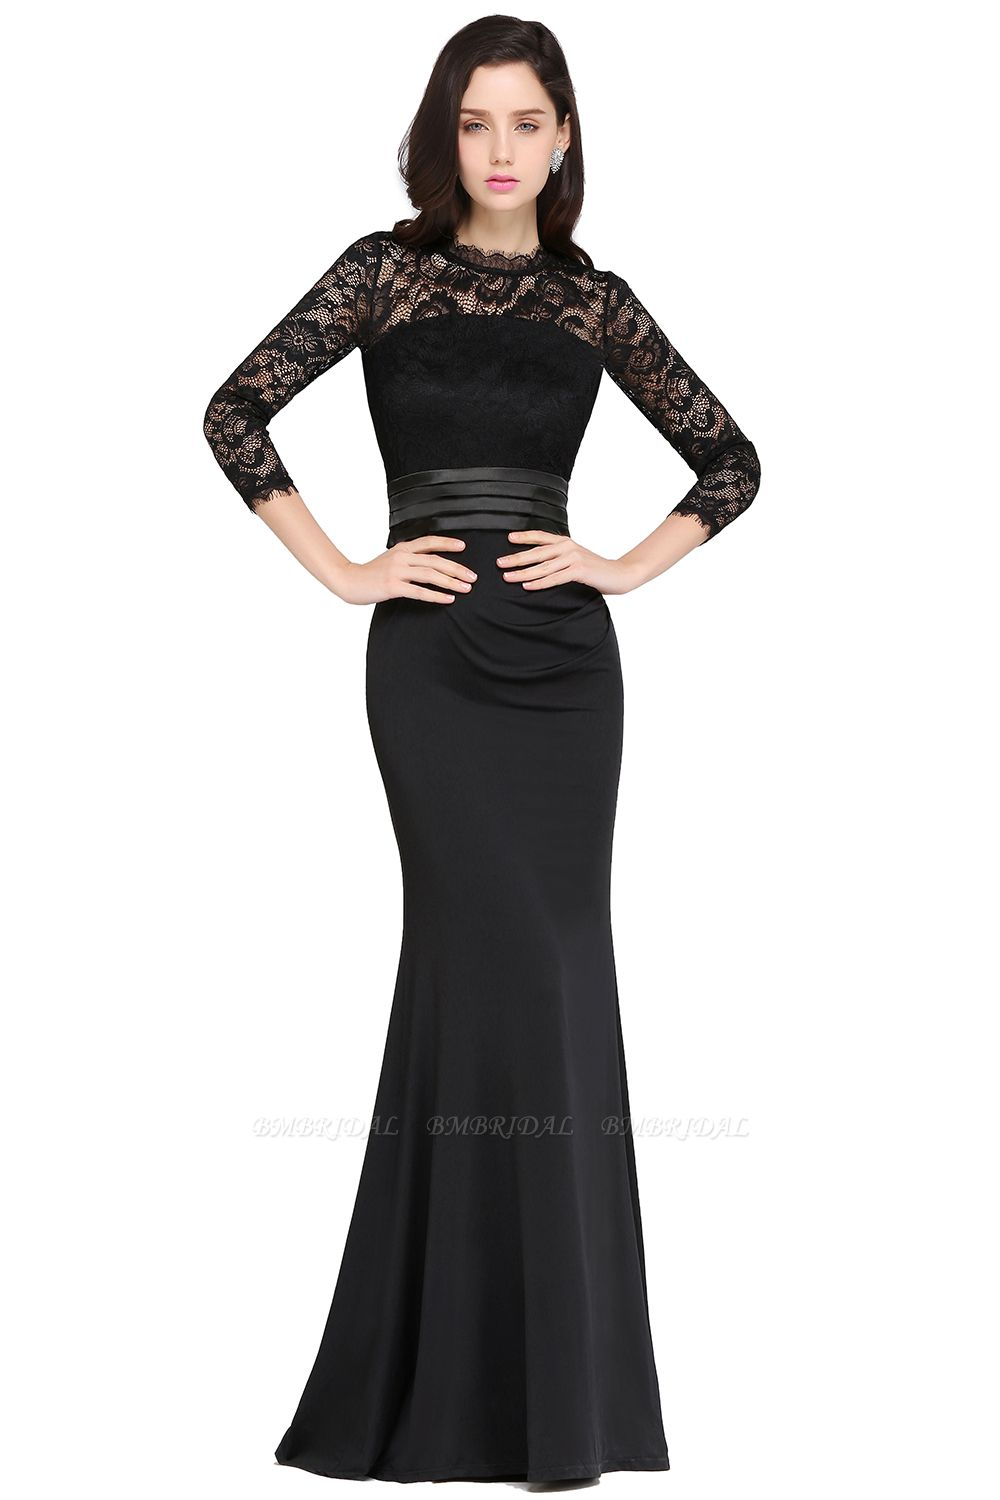 BMbridal Chic Sheath High Neck Black Bridesmaid Dress with Lace In Stock